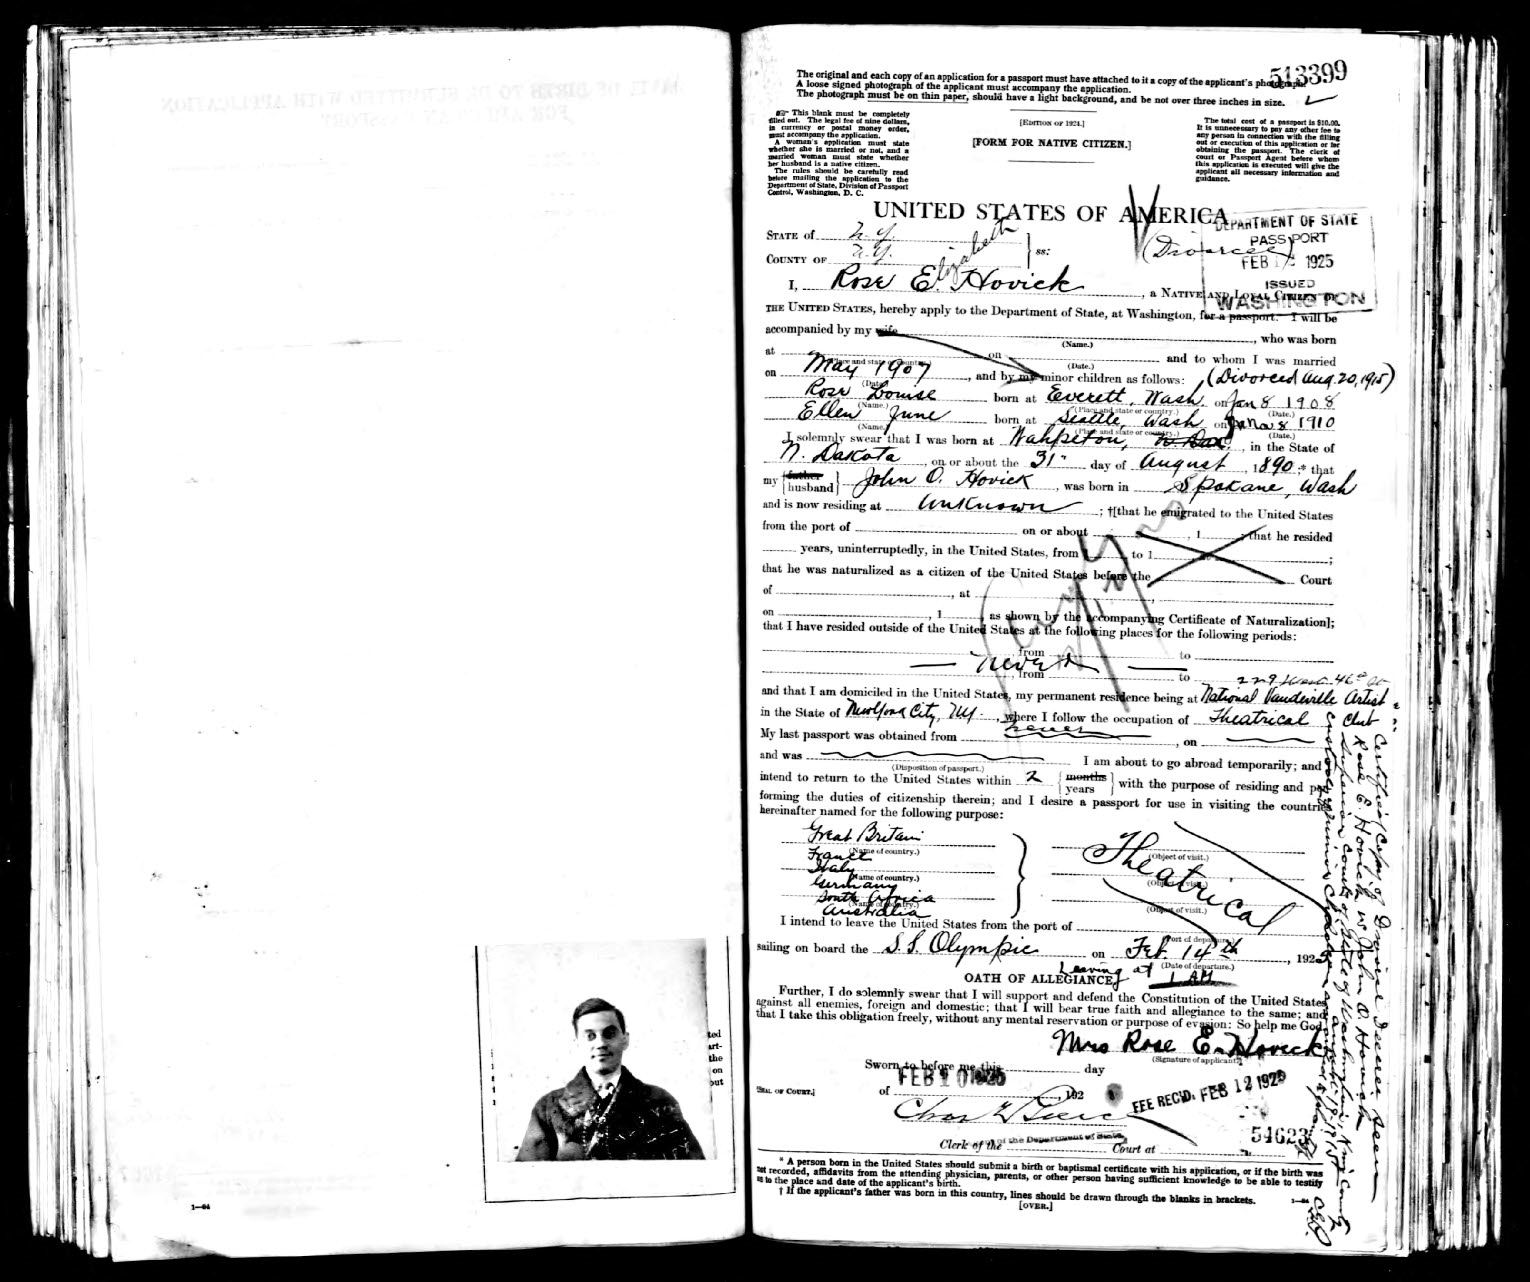 Photo: Passport application for Rose Hovick (Gypsy Rose Lee & June Havoc mother)